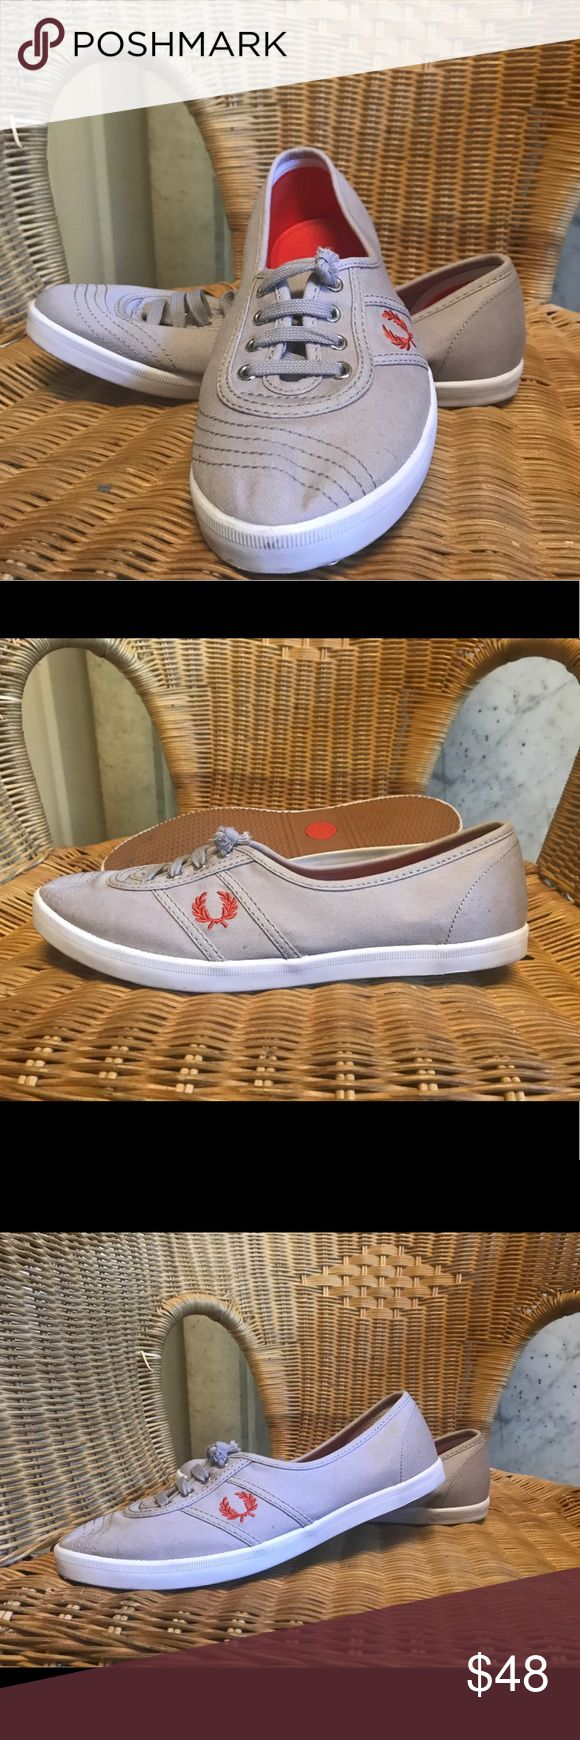 Fred Perry womens sneakers EXCELLENT condition, worn twice. Small marks on one sole, visible in photo. Original laces, although I did snip them to be flat and not overflowing.  US size 8 Fred Perry Shoes Sneakers